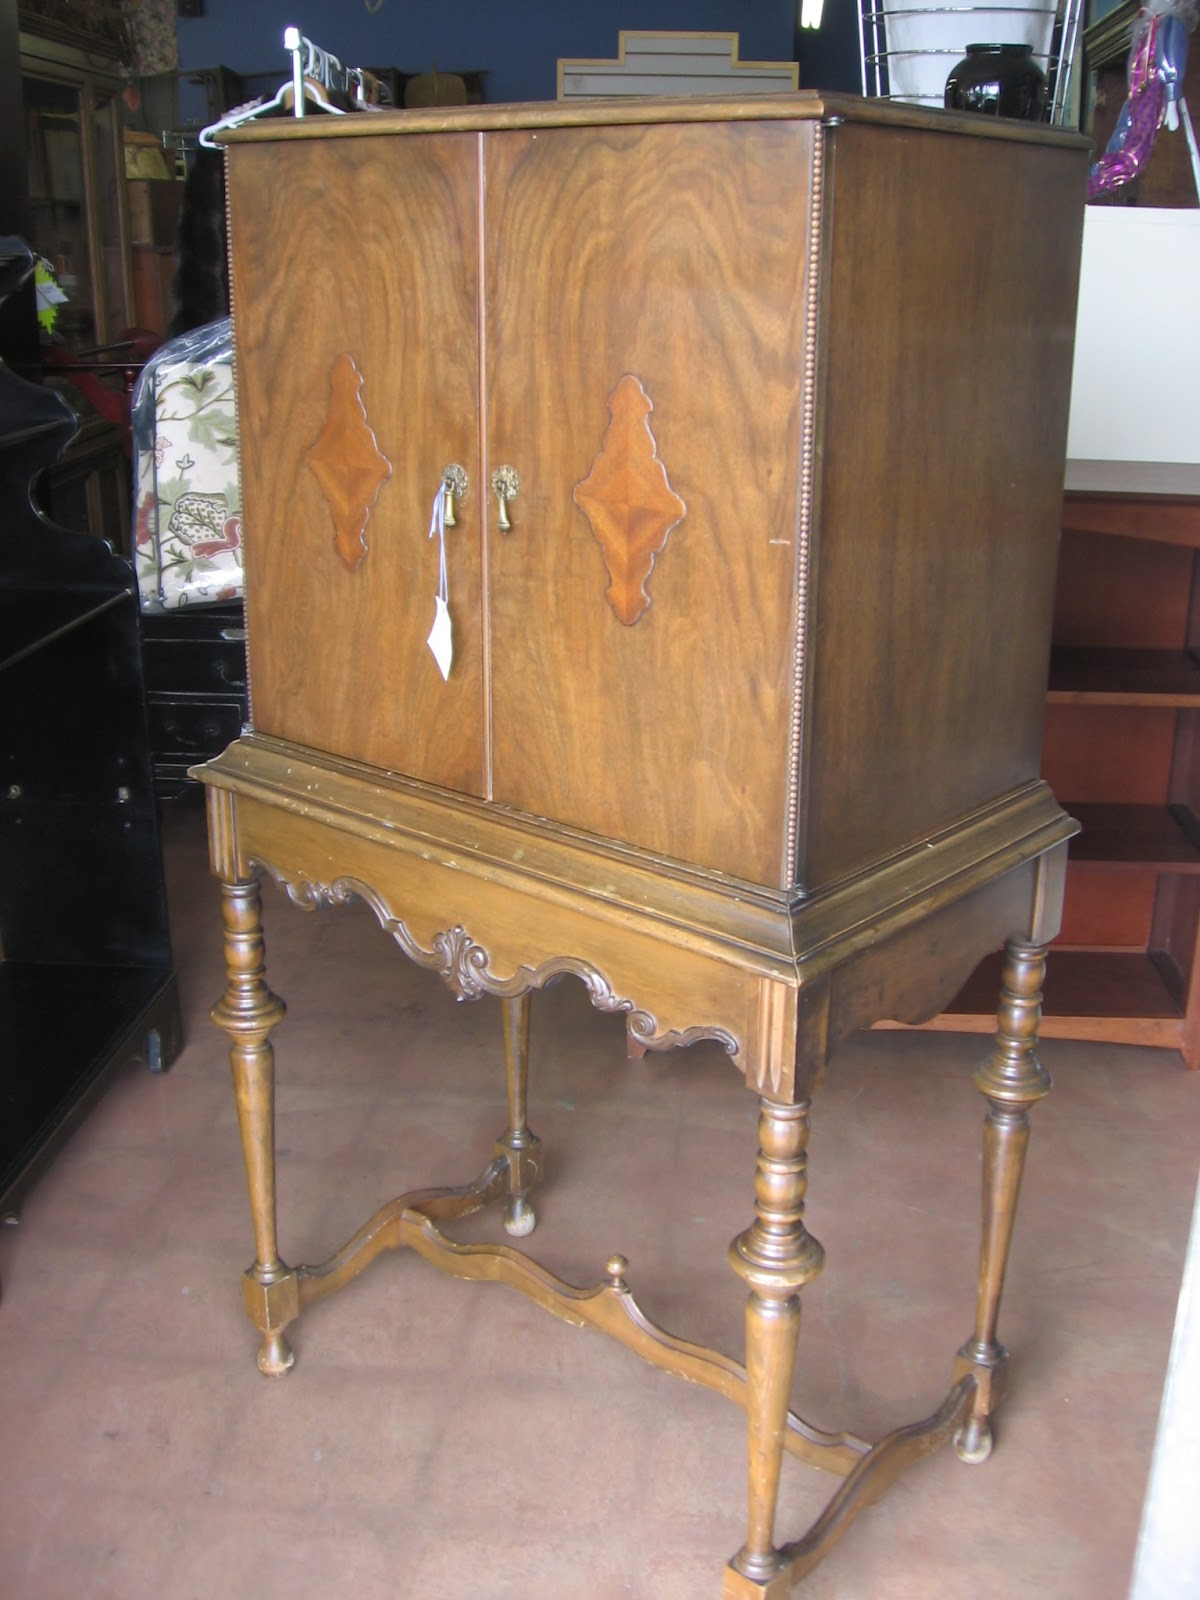 Antique radio cabinet - The Living Room Consignment & Tea: July 2011 - Antique  Radio - Antique Radio Cabinet For Sale Antique Furniture